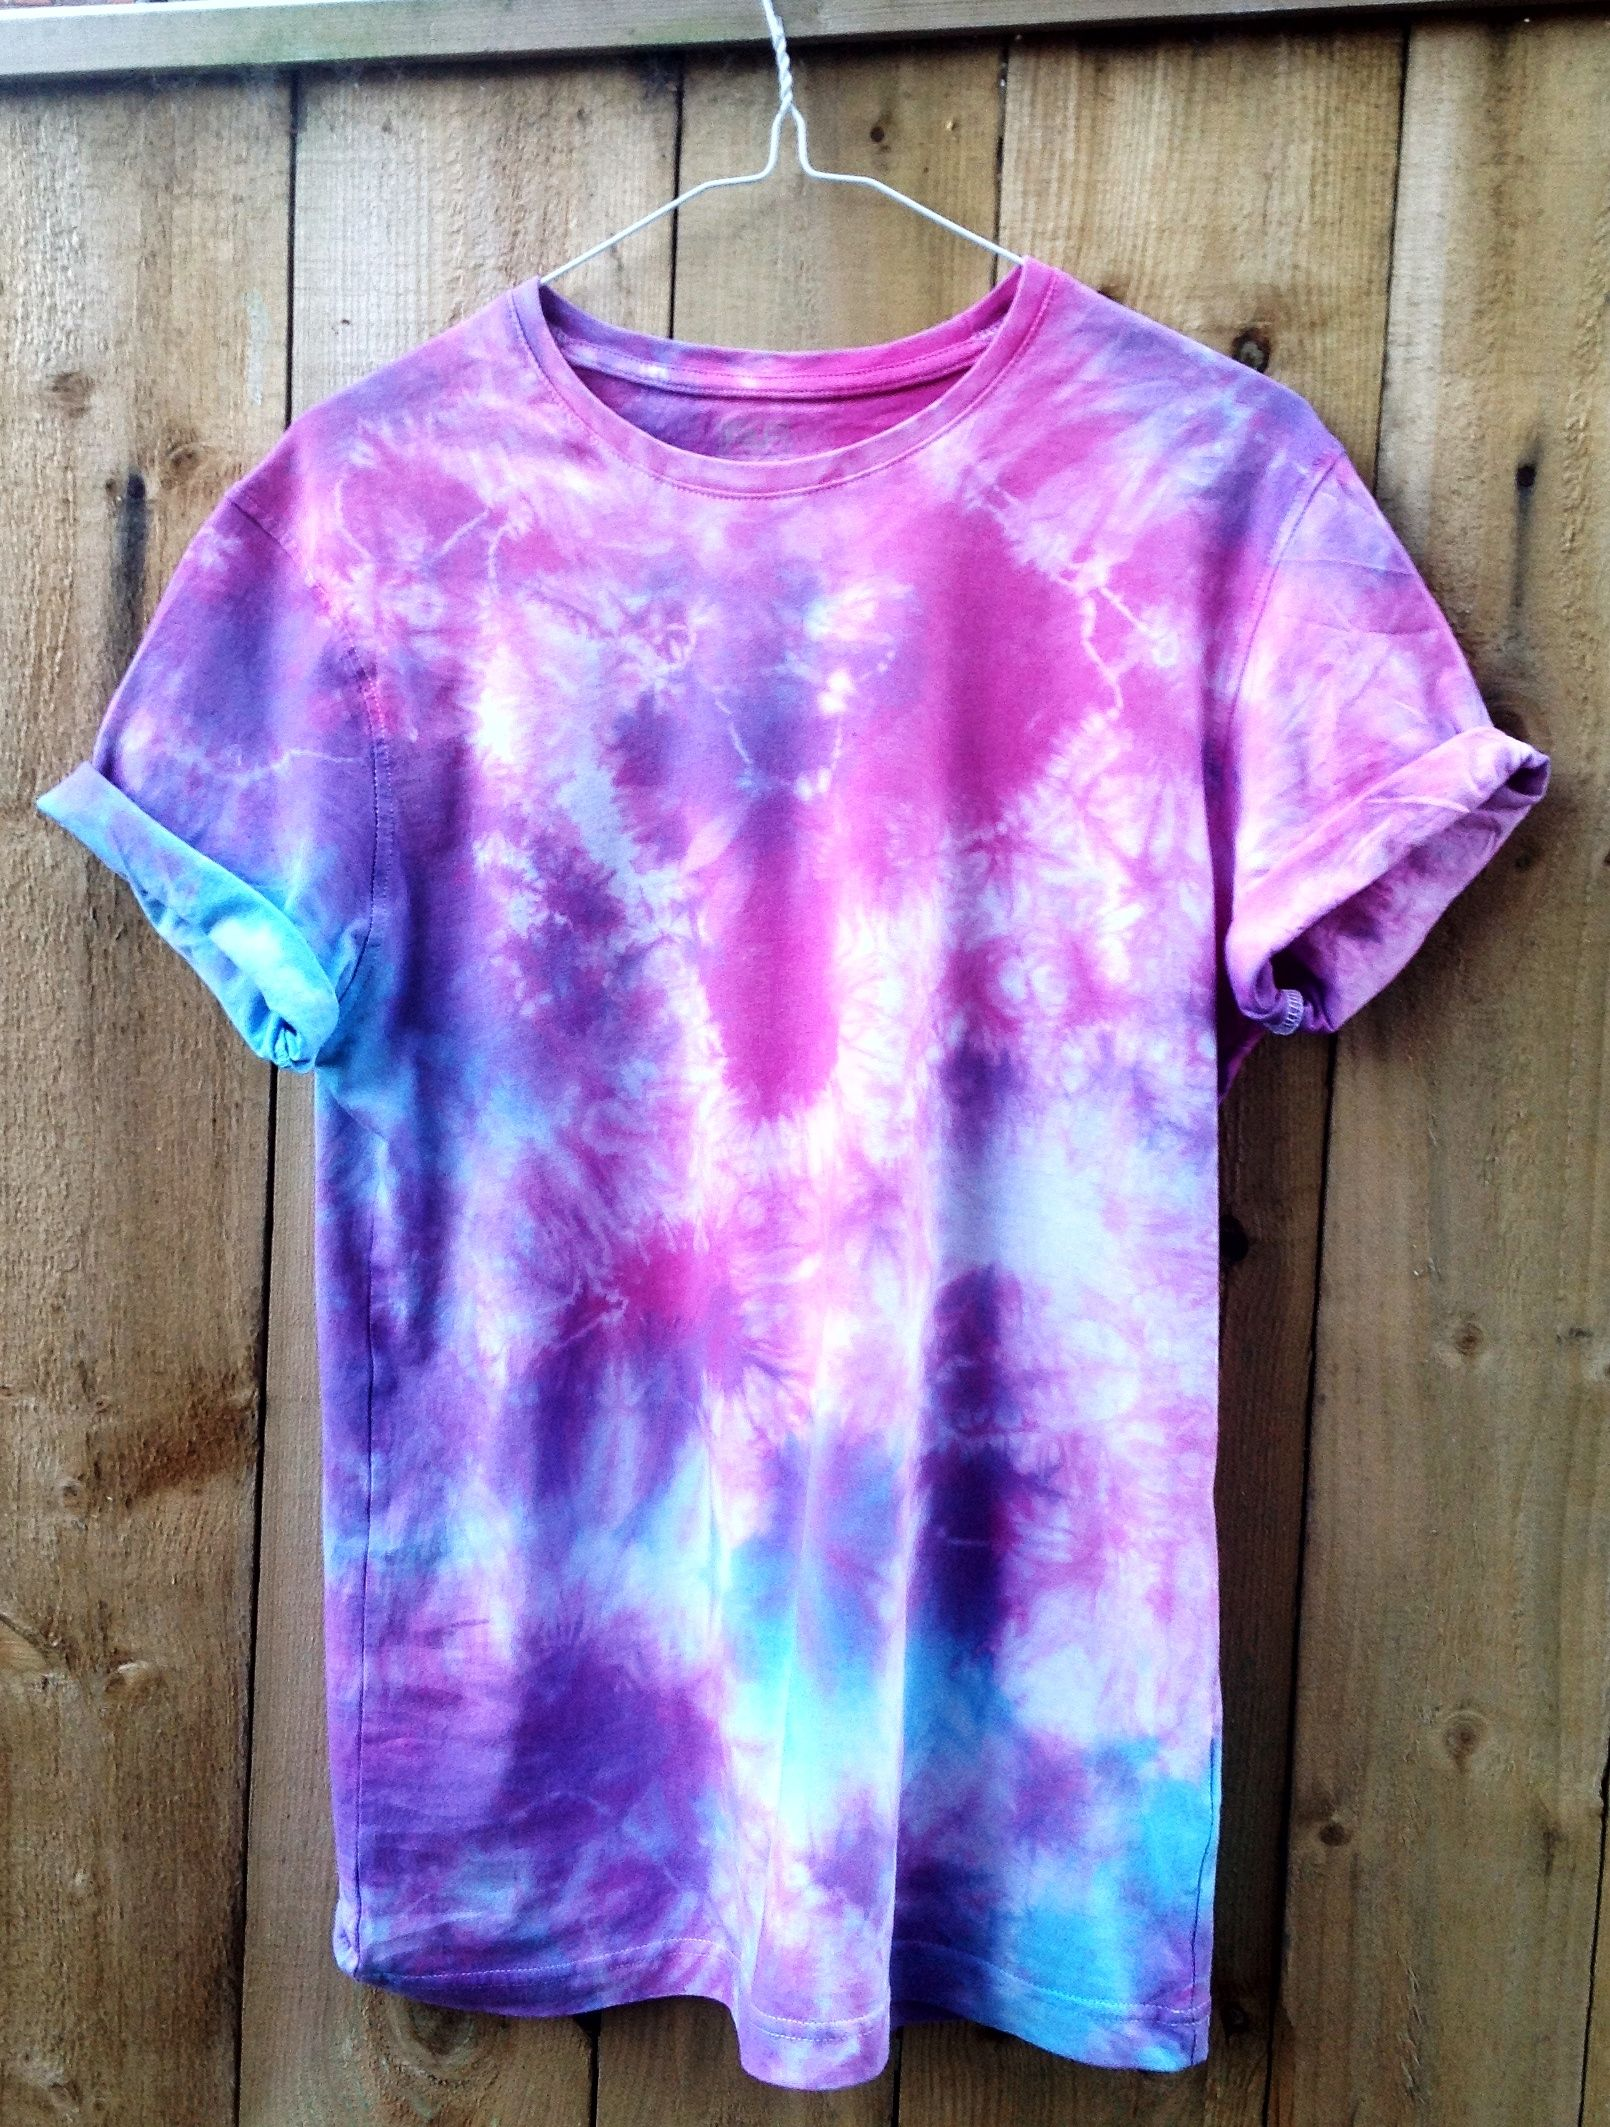 fa58a4a6bc7f3 Pin by Erika on Outfits in 2019 | Tie dye shirts, Tie dye shorts ...